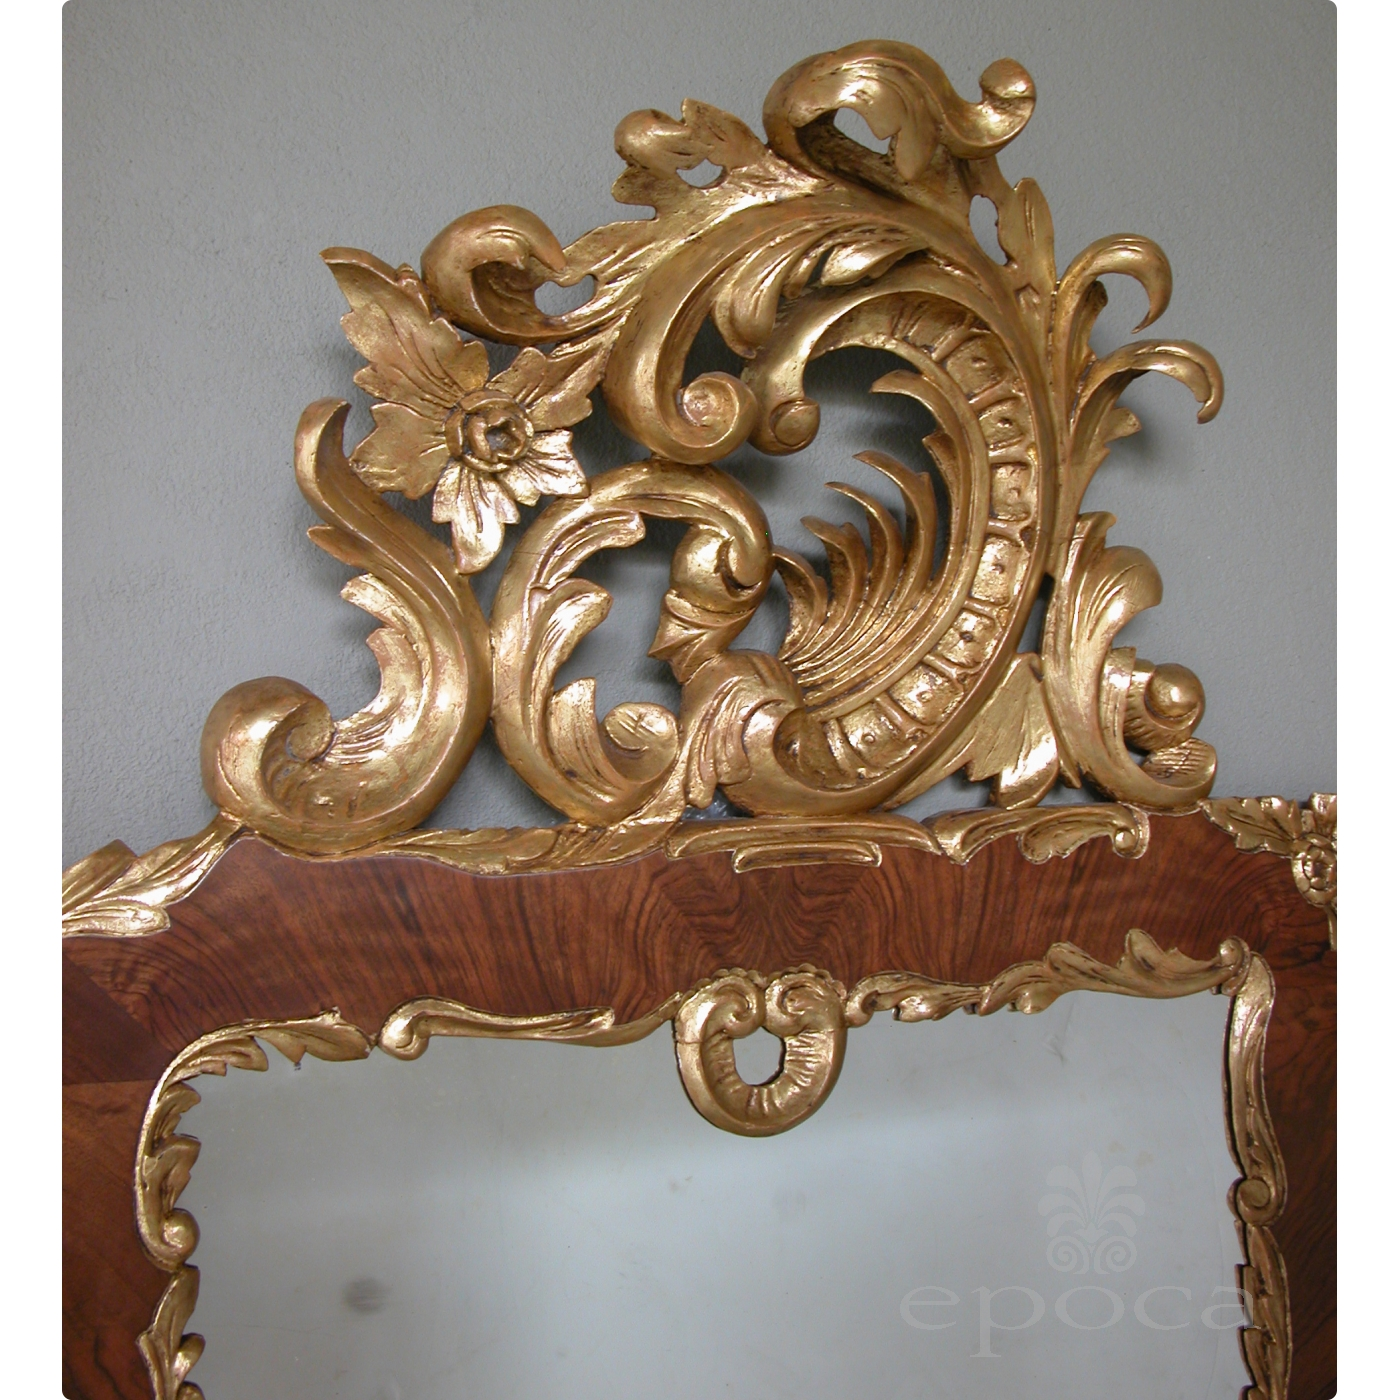 A Curvaceous Danish Rococo Style Burl Walnut And Carved